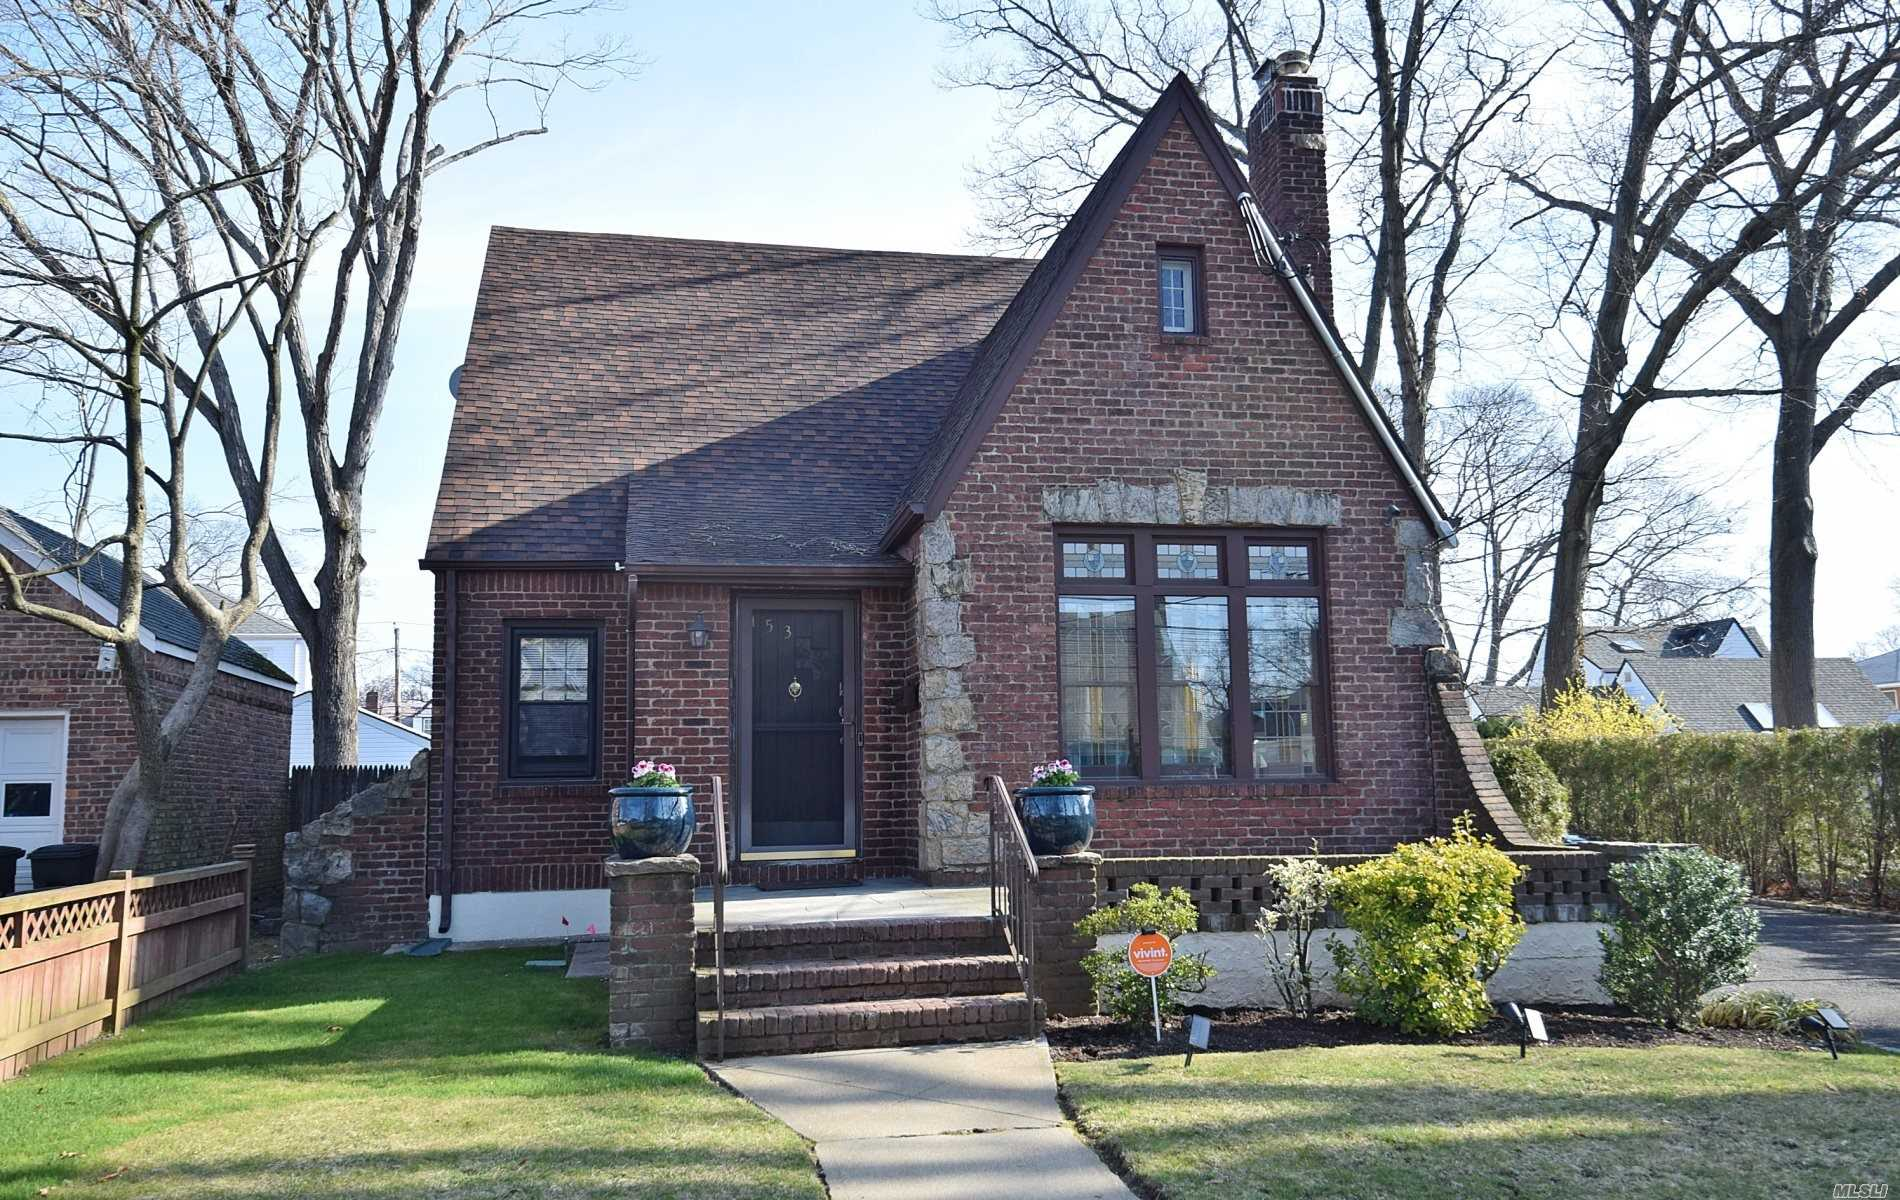 Rare Immaculate Traditional Tudor Style Brick Home in the Heart of Valley Stream, blocks off of Merrick and close to all conveniences. Come take a look at this charming property in Absolute Pristine condition. Formal Living & Dining Rooms. High ceilings, Open Concept Kitchen with Pantry, attached Den with Sliders to the Deck & Backyard. New Hardwood floors, New Bathroom, New roof, New Garage doors, Finished Basement with tons of storage and OSE. Walk-in Closet and addt'l storage on 2nd Fl.